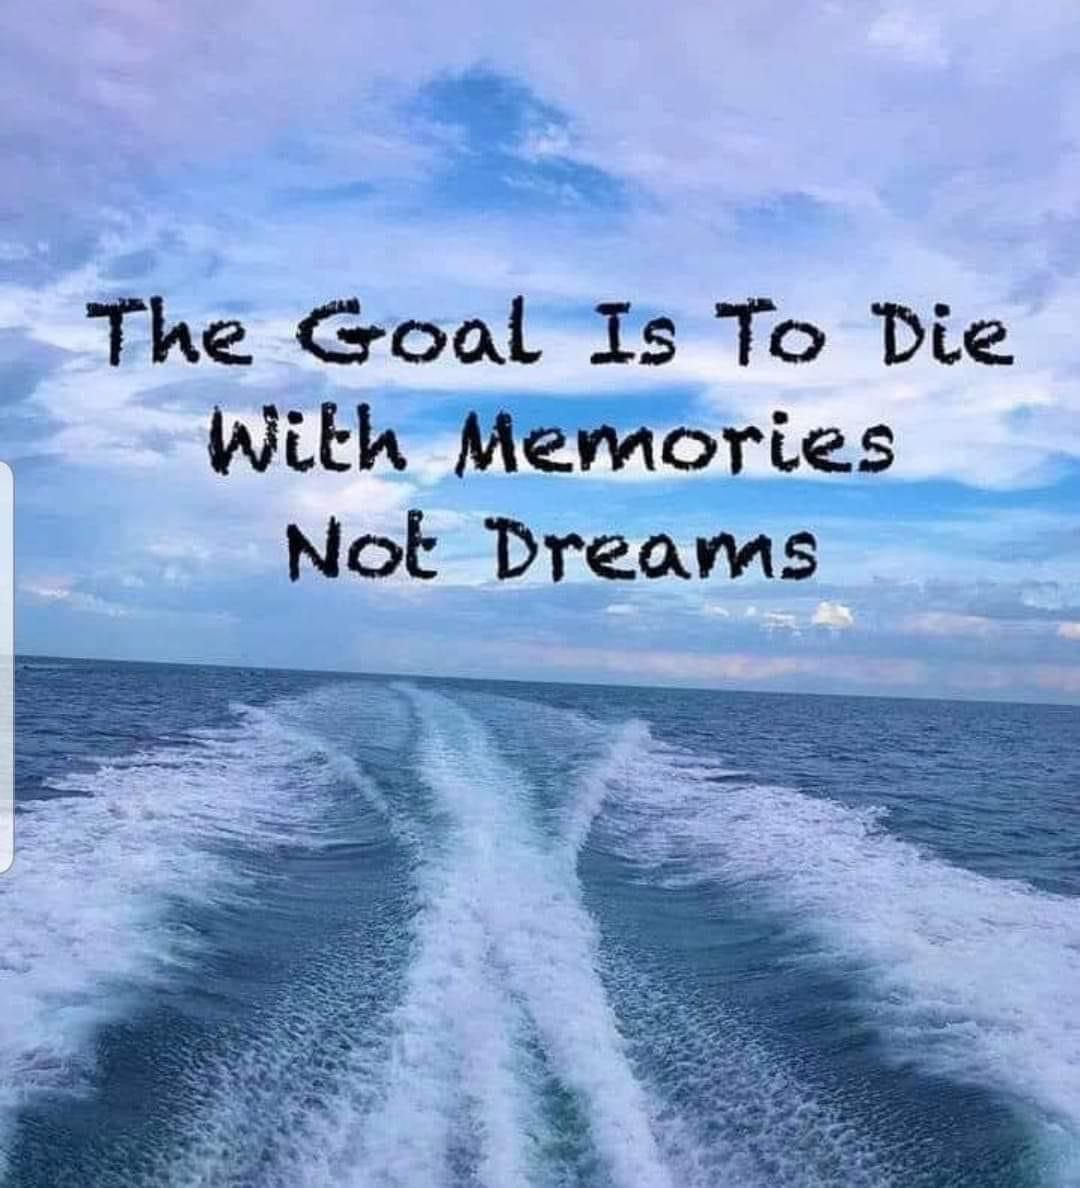 Pin By Smg Health On Inspirational Quotes Uplifting Memes Good Morning Happy Memories